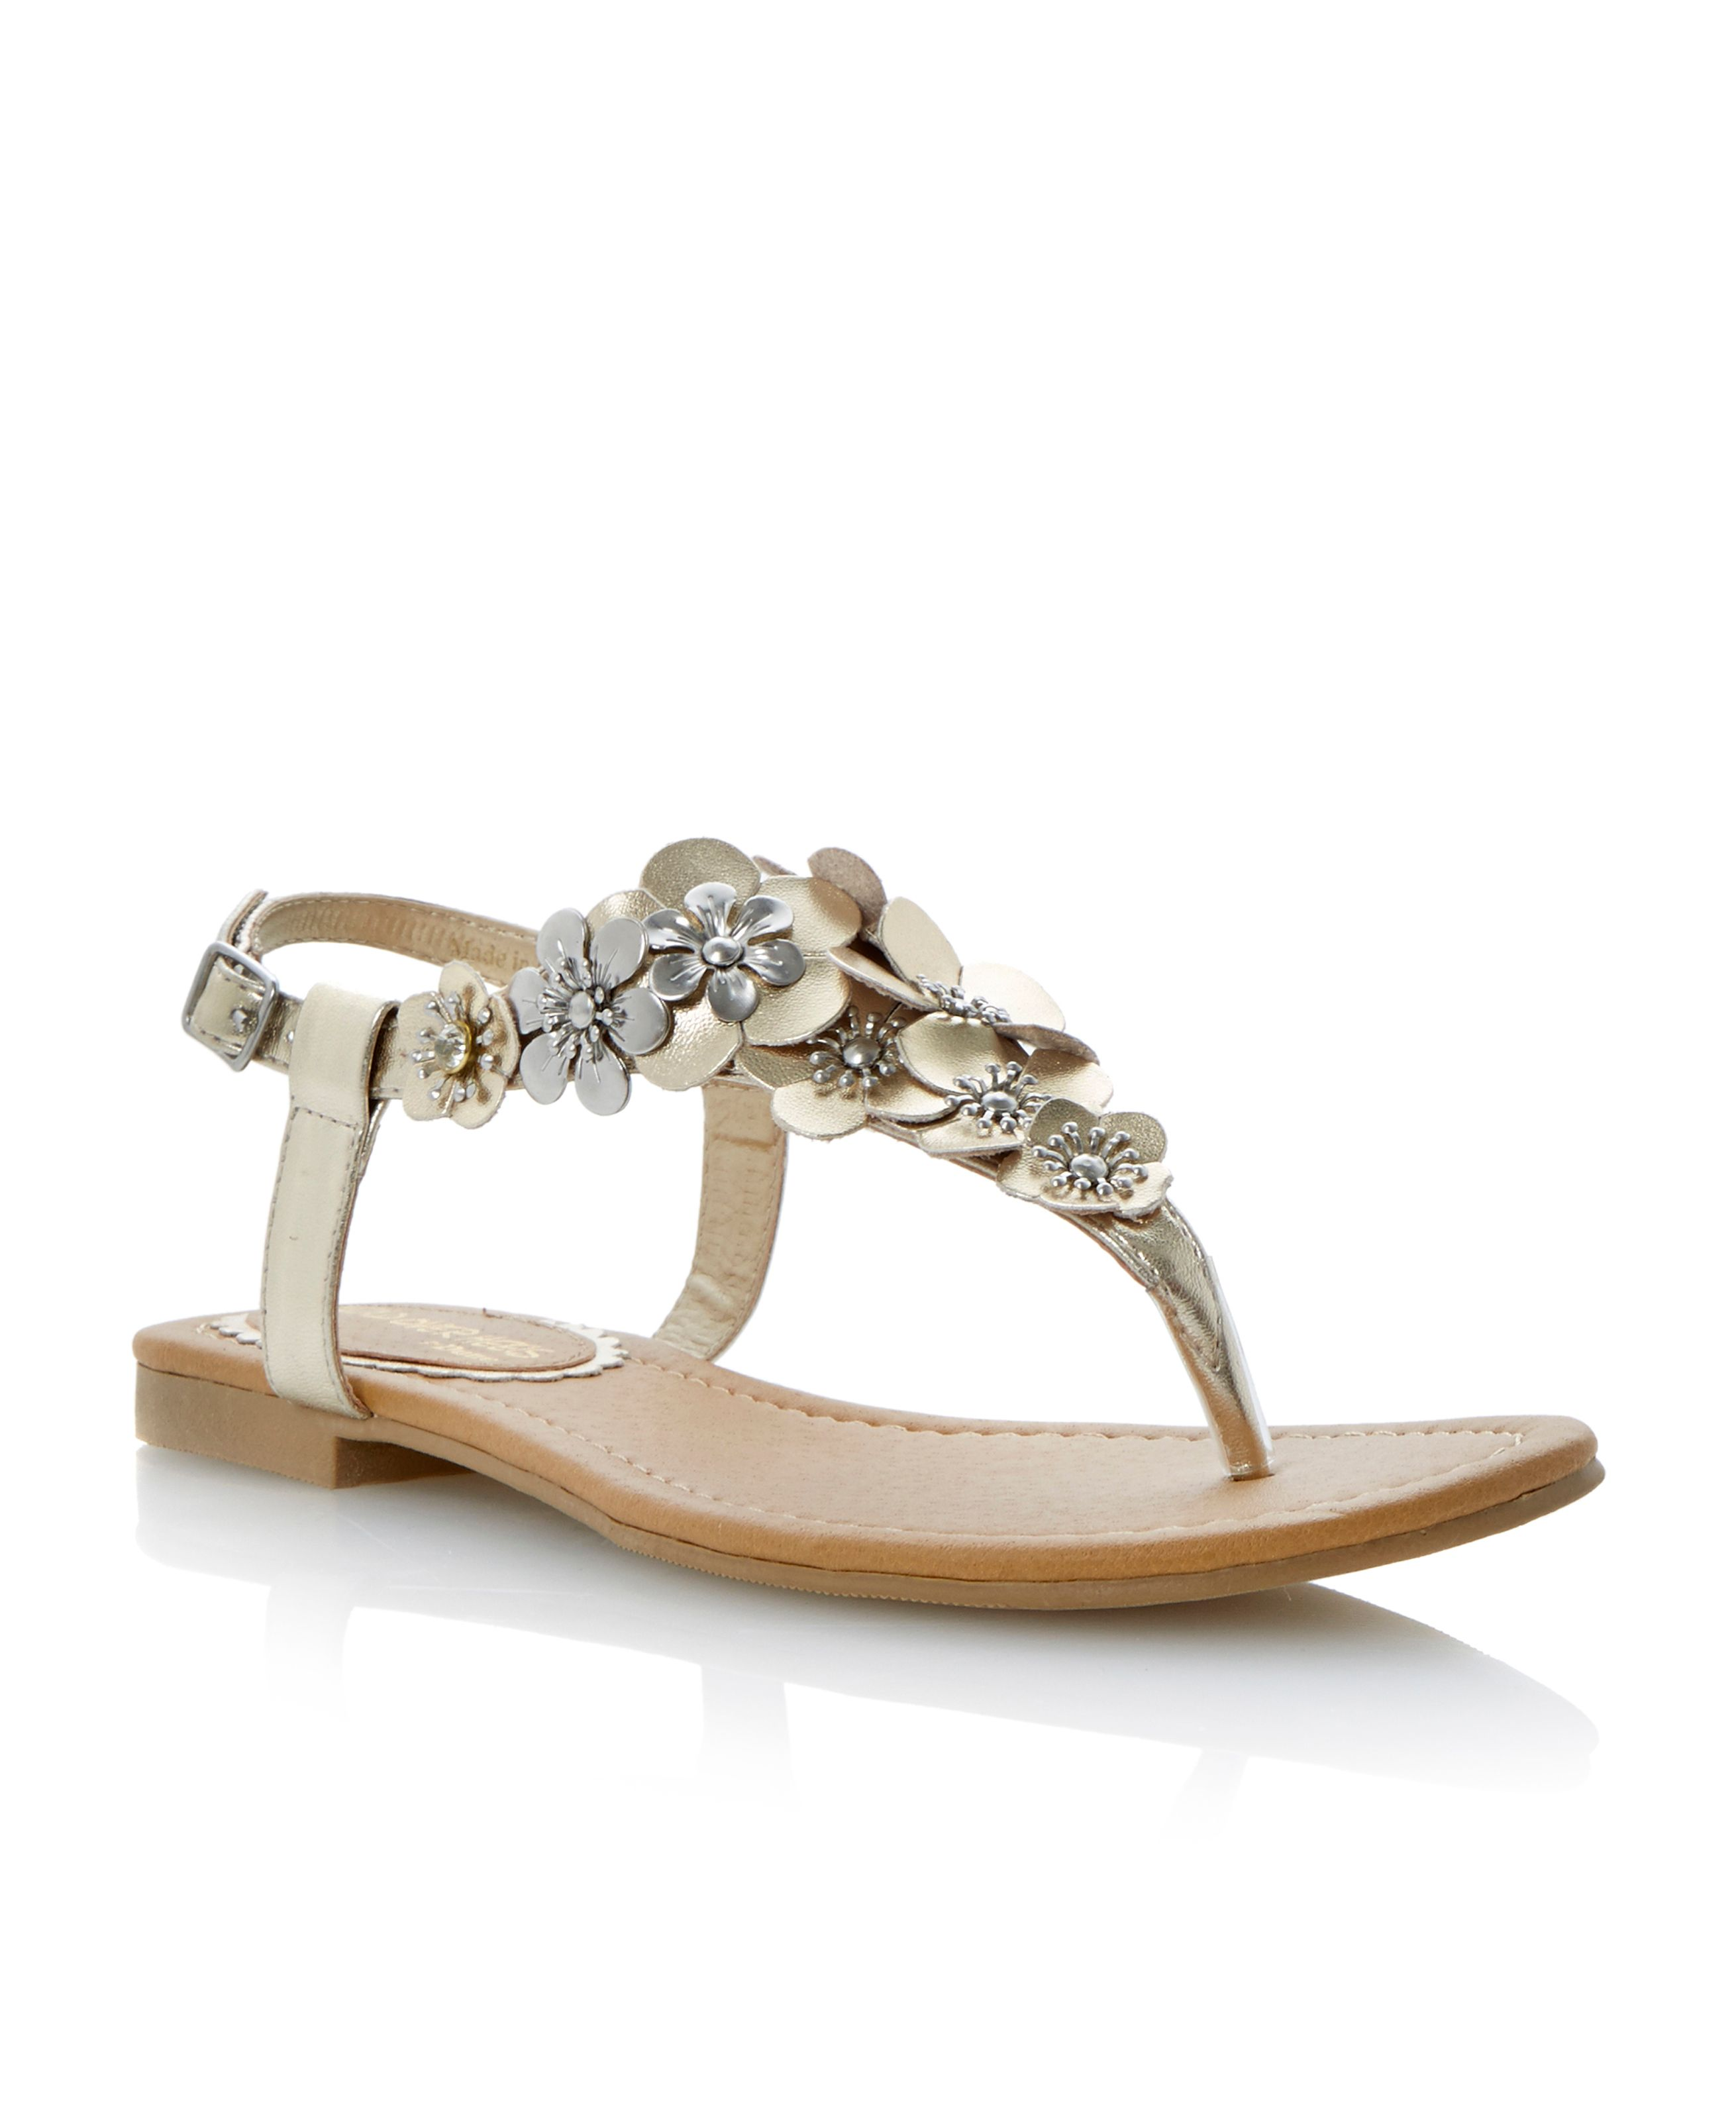 Honeycomb buckle flat dressy sandals